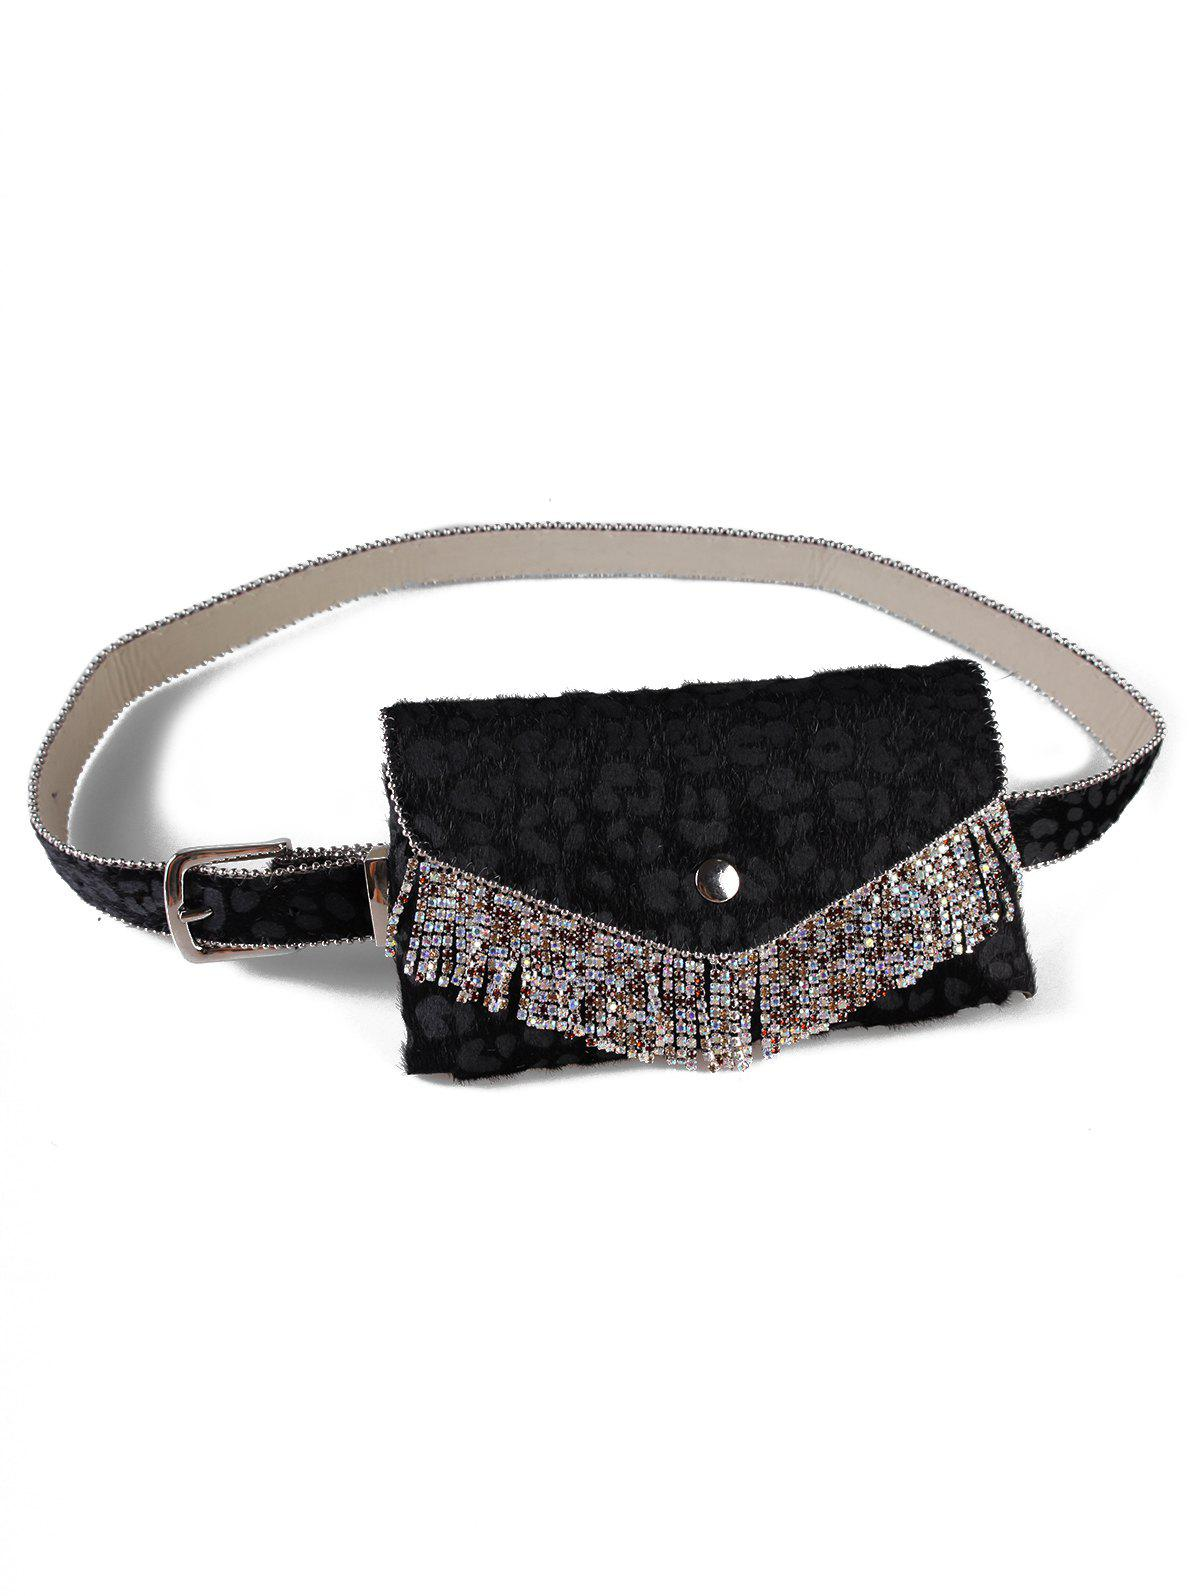 Shop Vintage Leopard Print Rhinestone Belt Bag